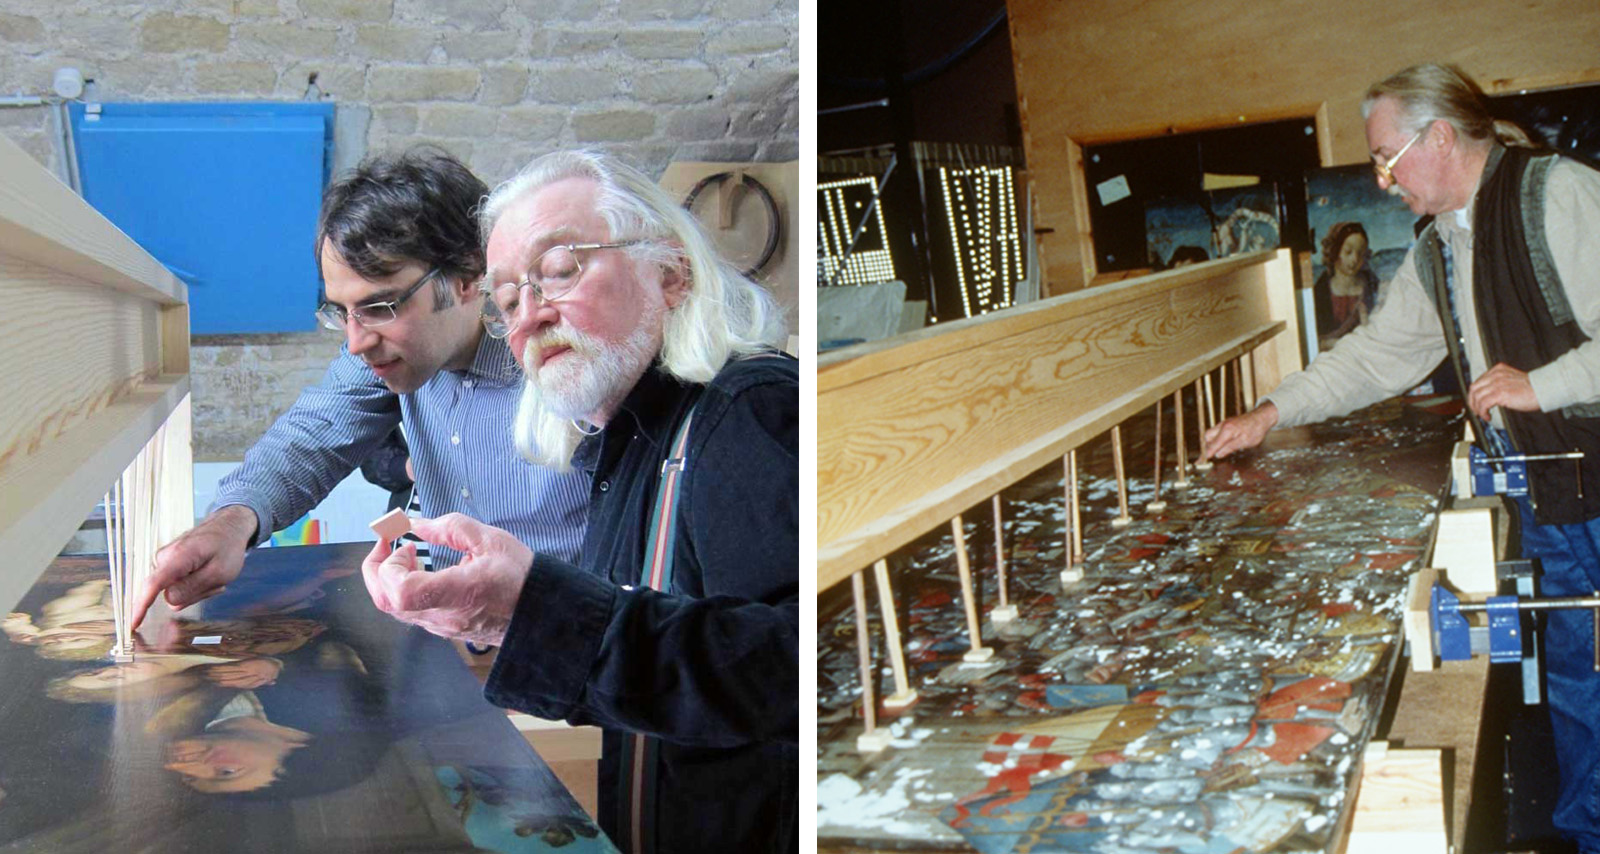 Left: An older male trainer and a younger male trainee examine a wood panel painting. Right: A photo from 1999 of the trainer working on a panel painting.